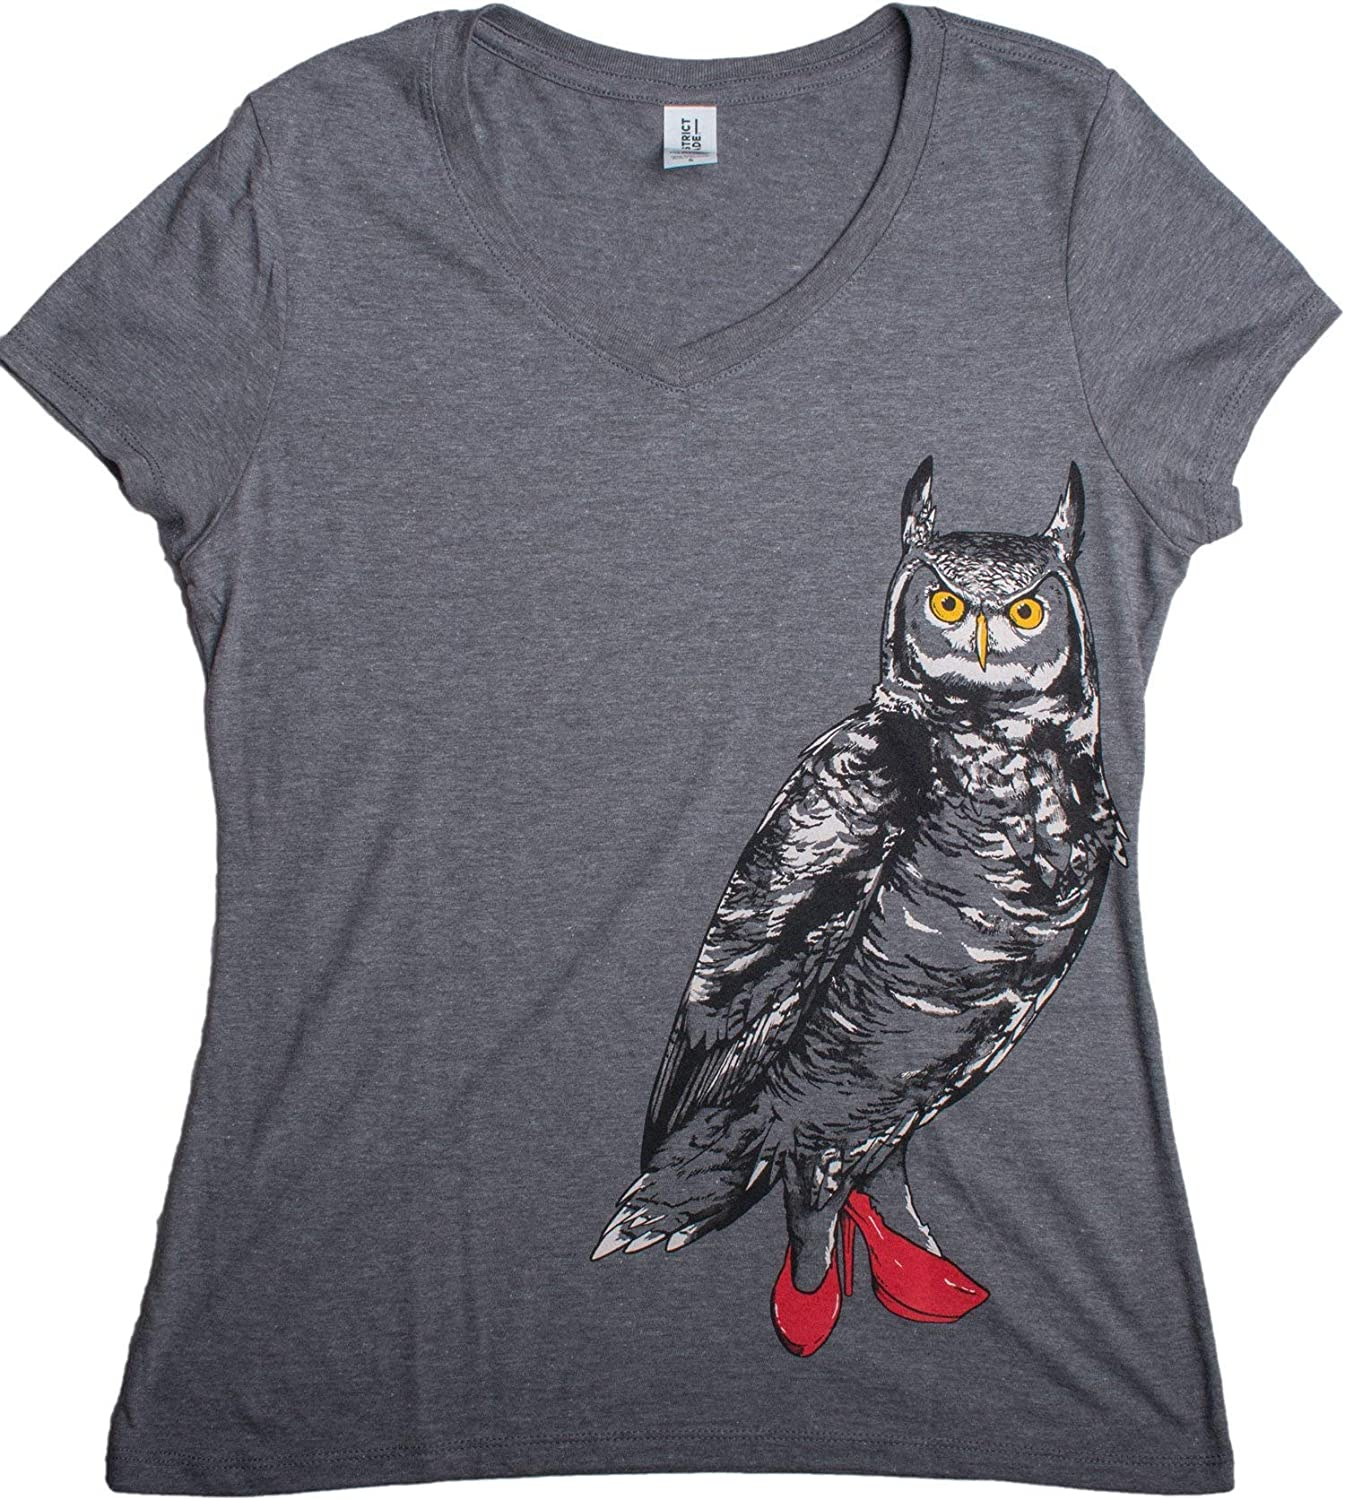 Owl in Pumps | Cute Funny Bird Nature Shoe Humor Comfy V-Neck T-Shirt for Women